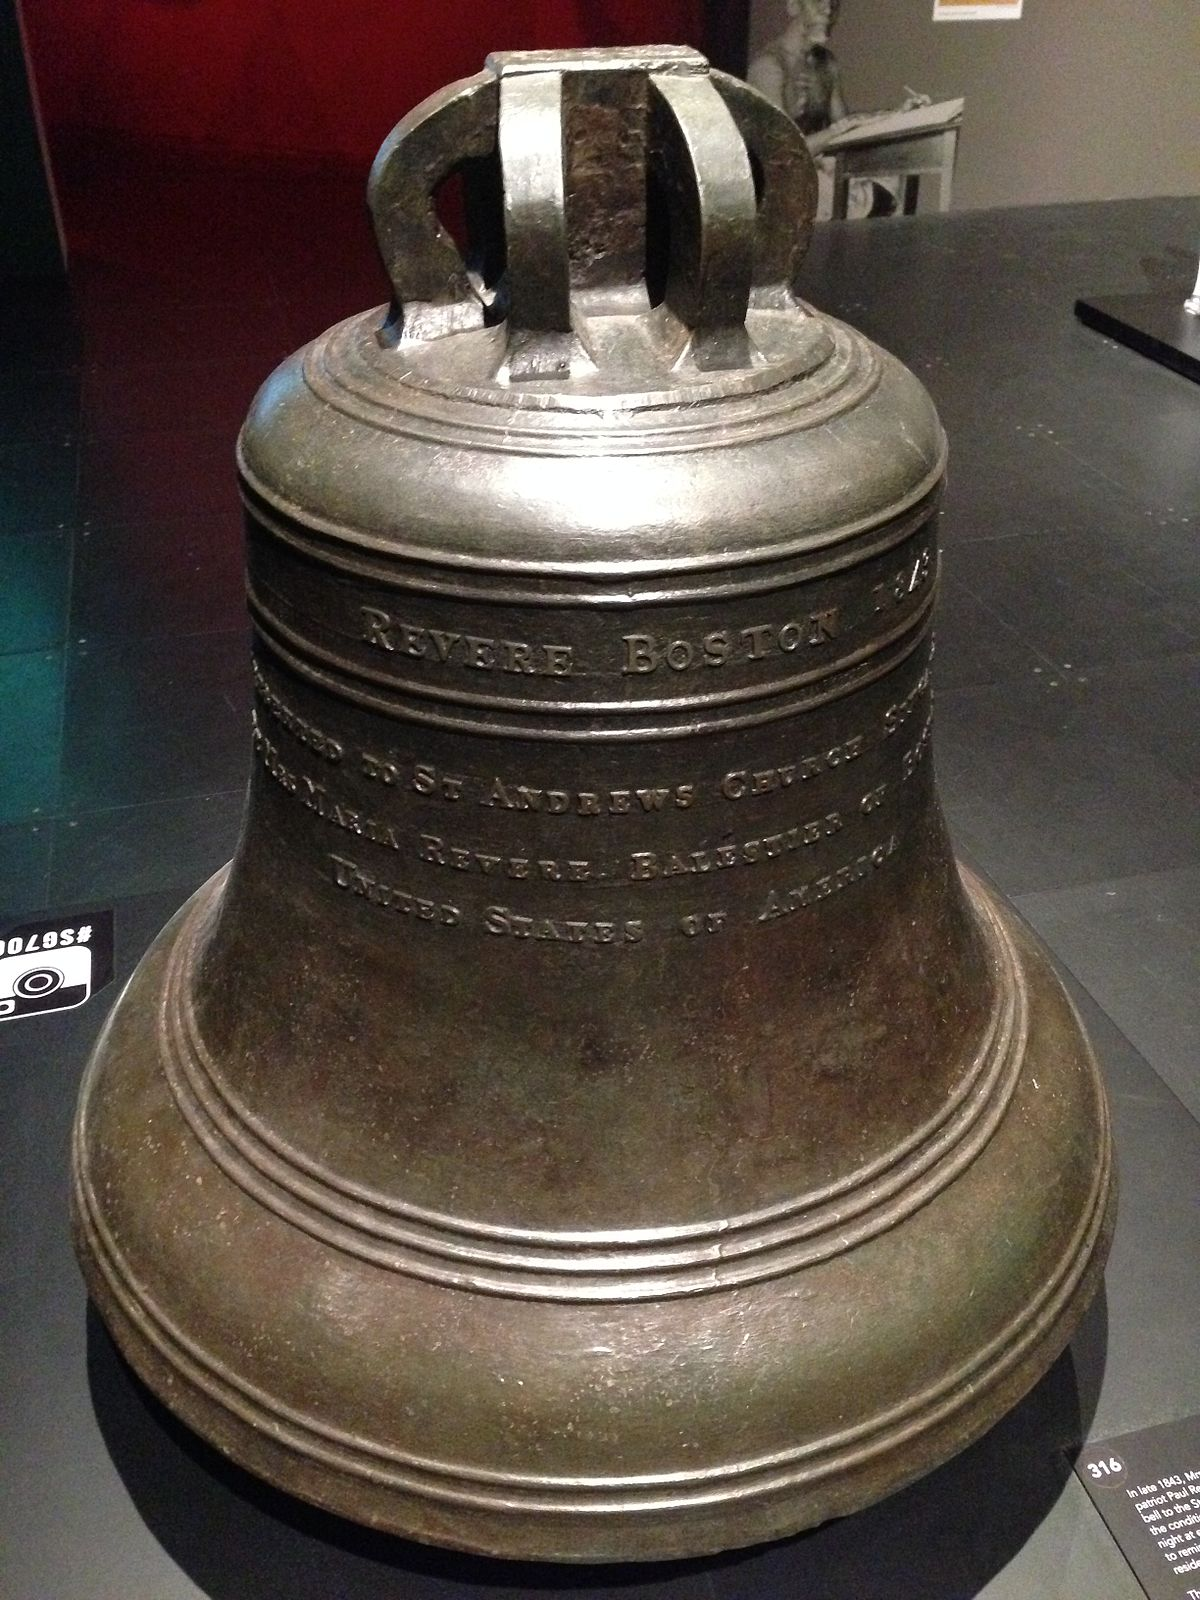 Revere bell wikipedia biocorpaavc Images